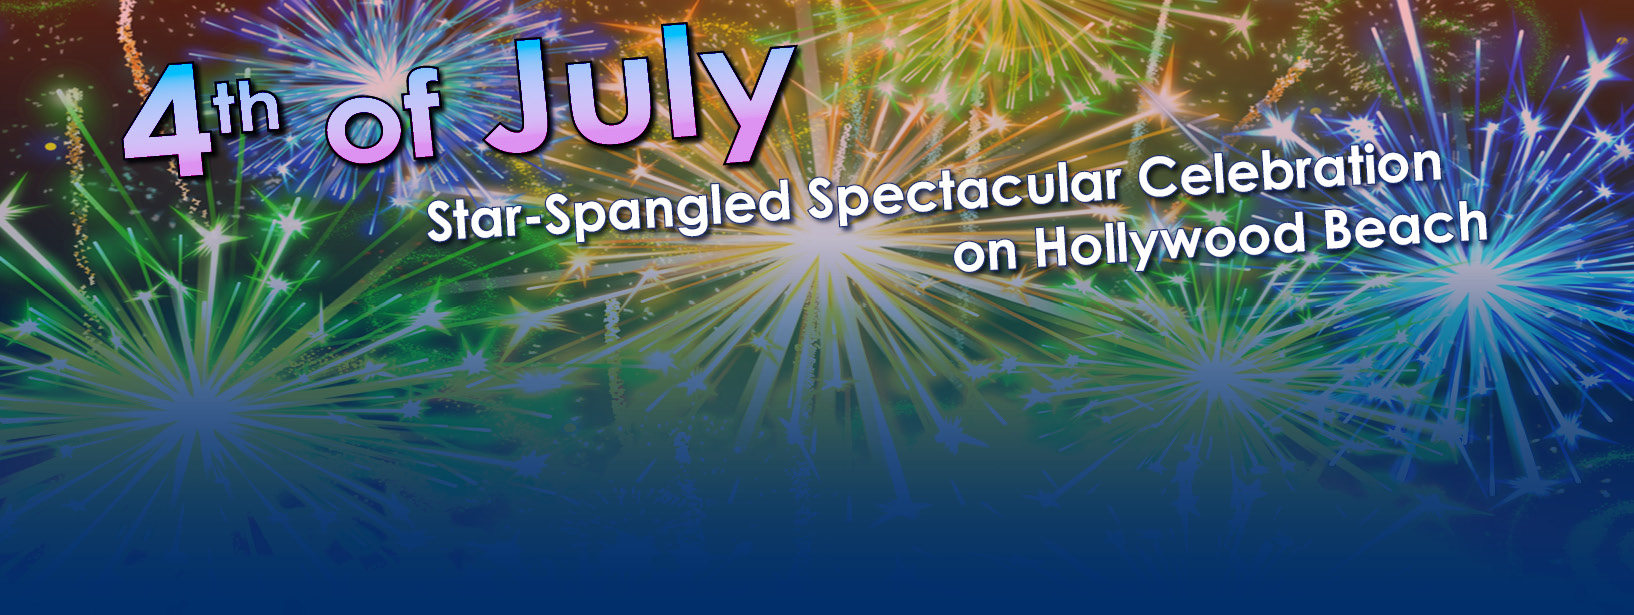 Event Graphic 4th of July 2015.jpg